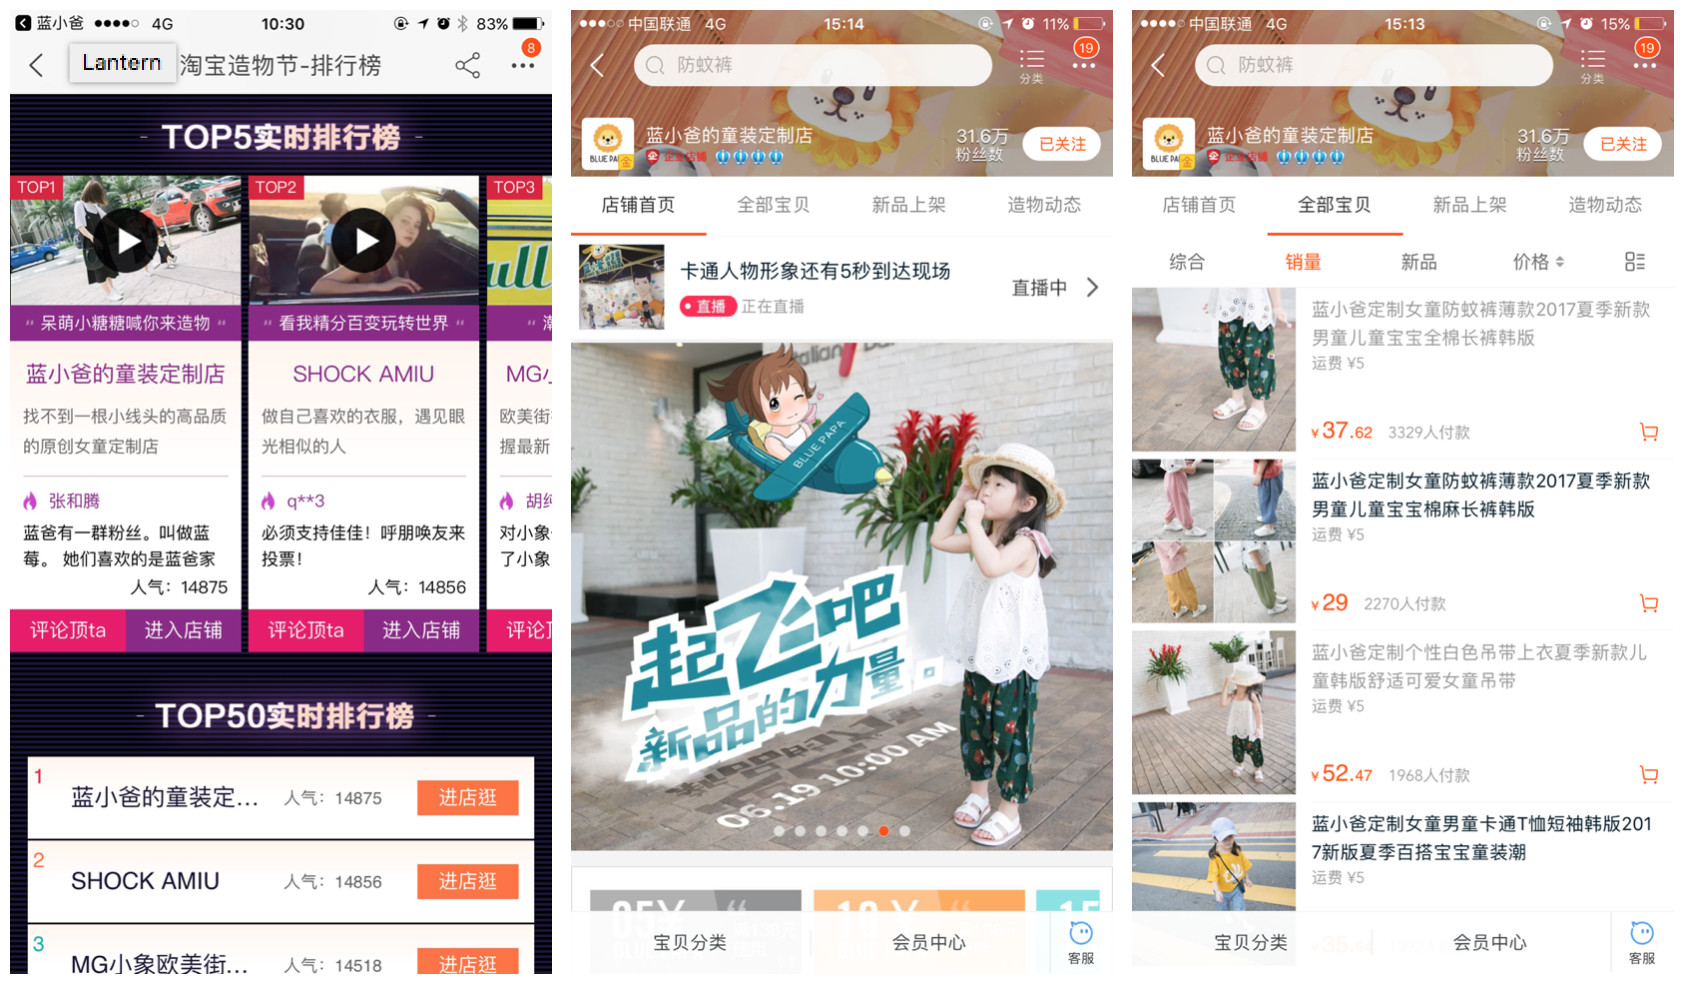 (1) Blue Papa chosen as top 5 Taobao shop, (2) Blue Papa's live streaming (3) Blue Papa's Taobao shop (Image Credit: TechNode)